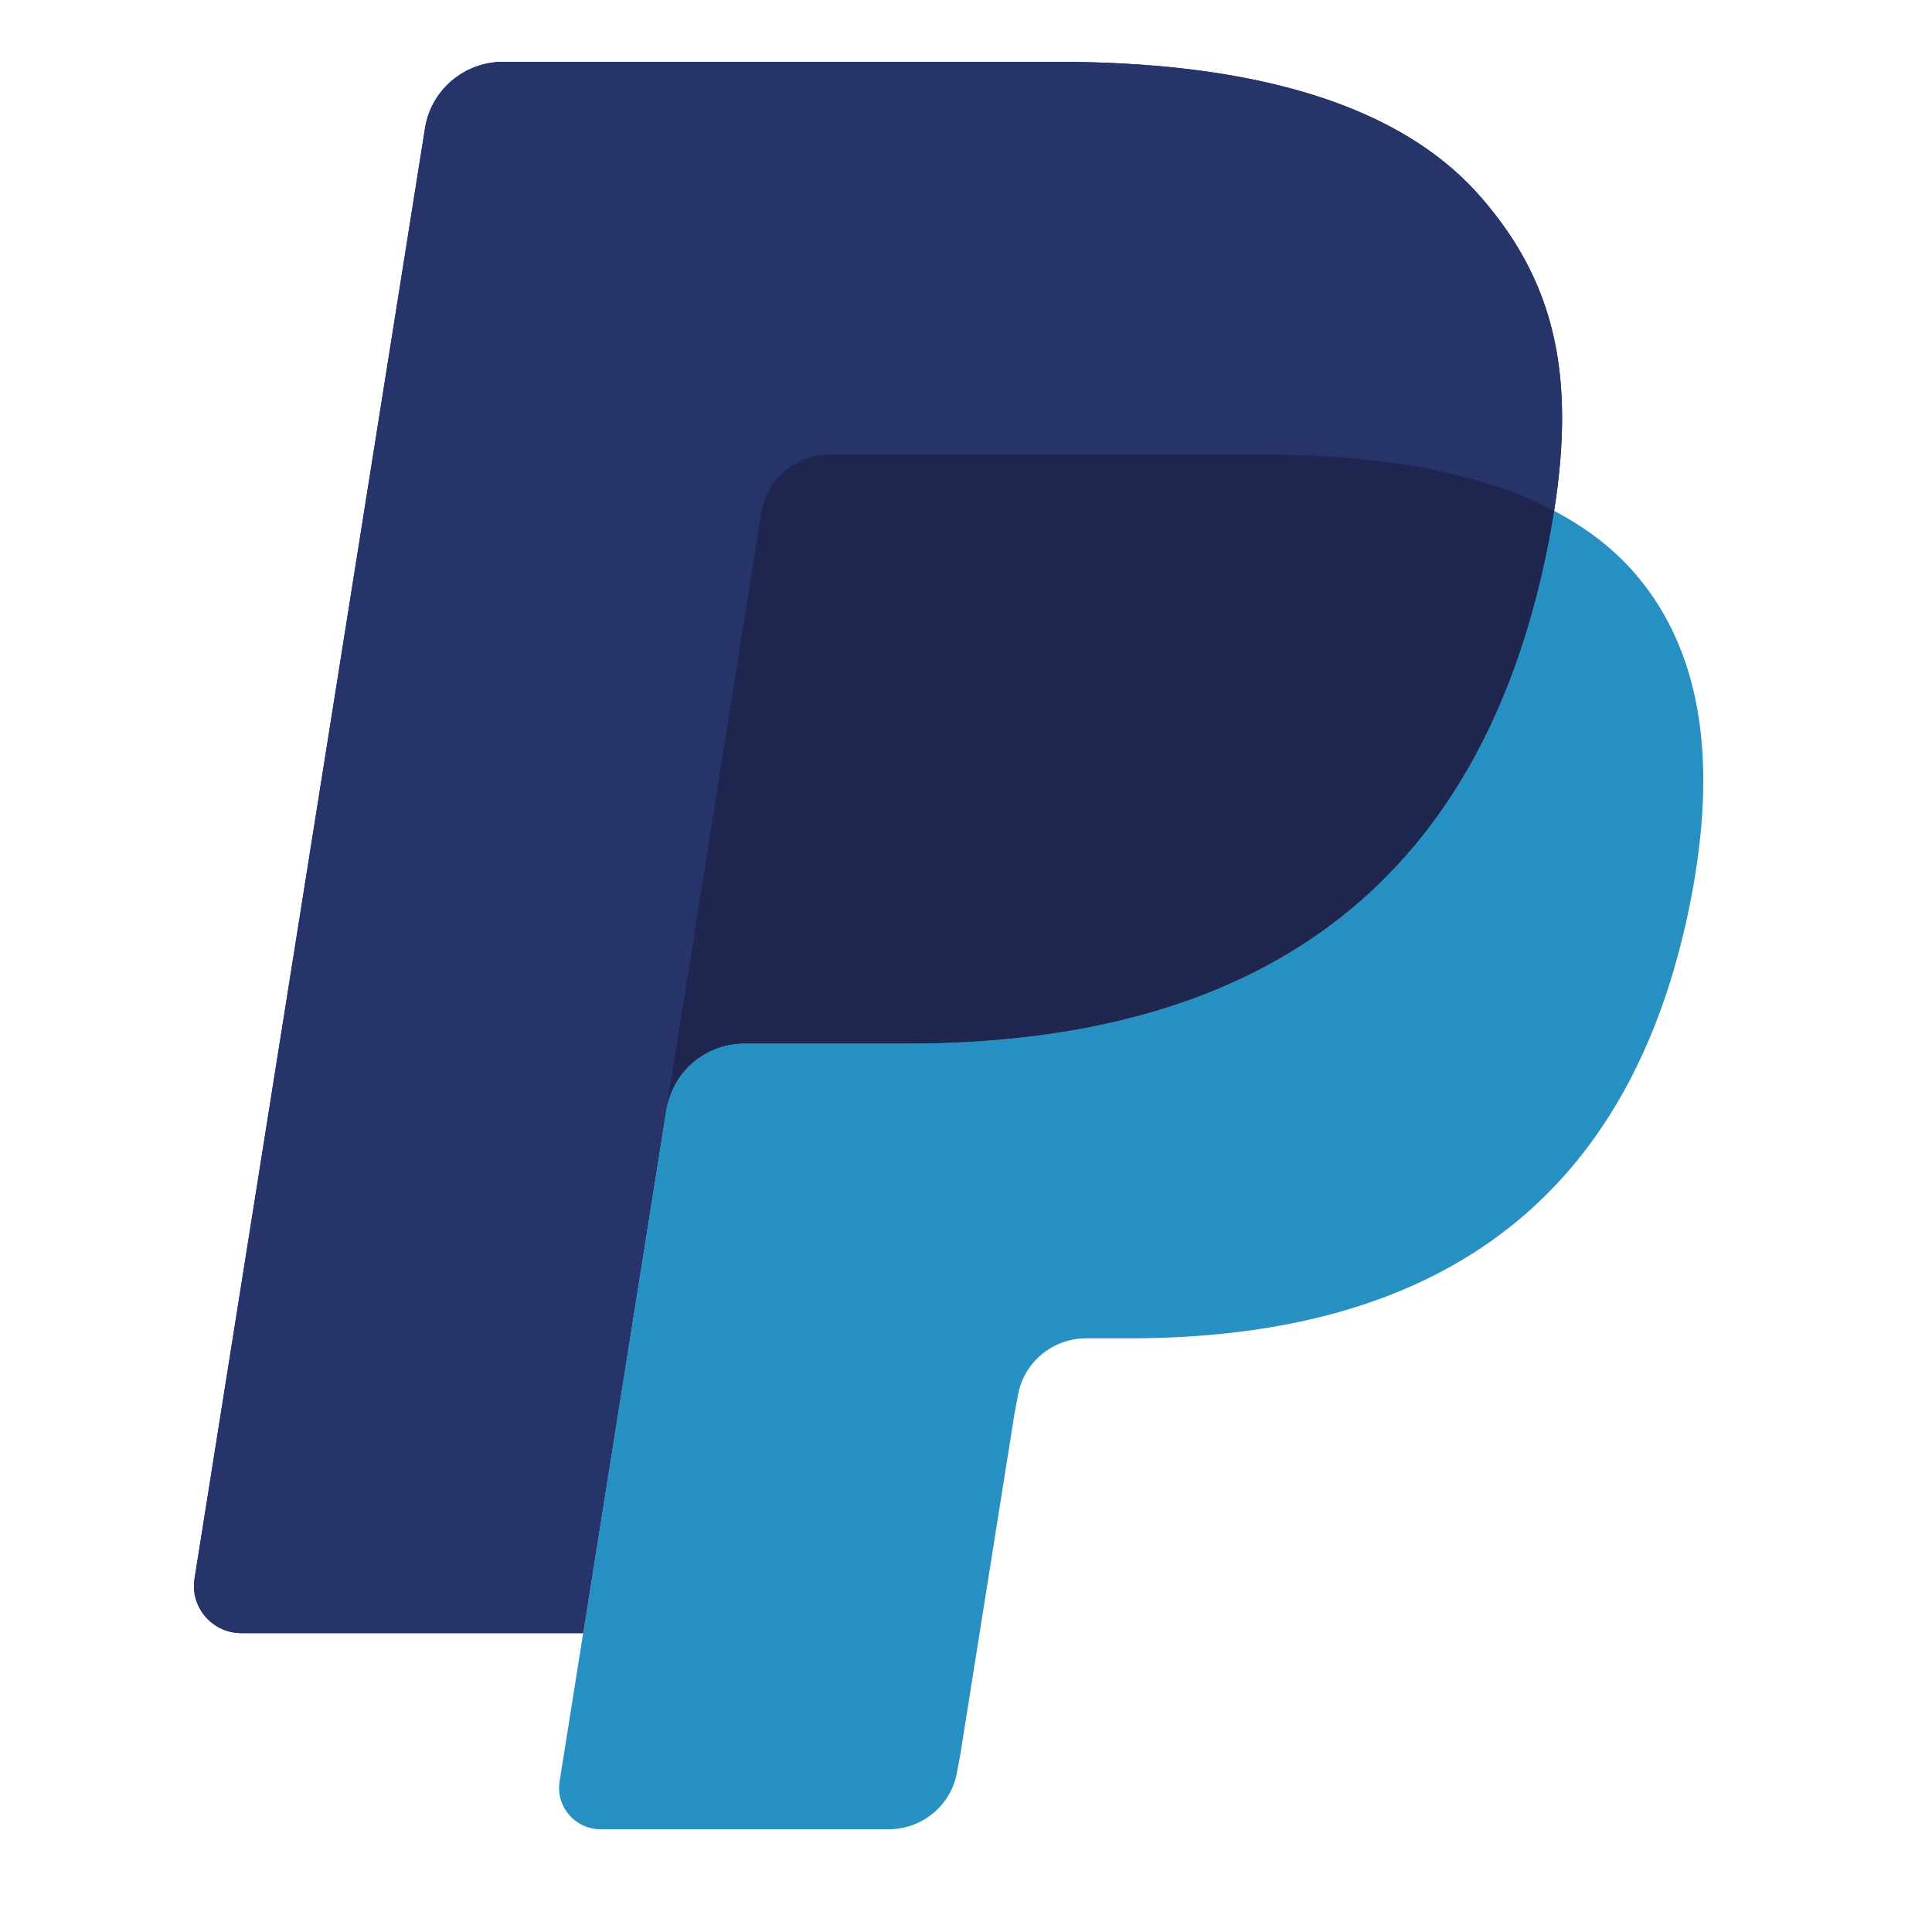 Paypal Logo Paypal Symbol Meaning History and Evolution